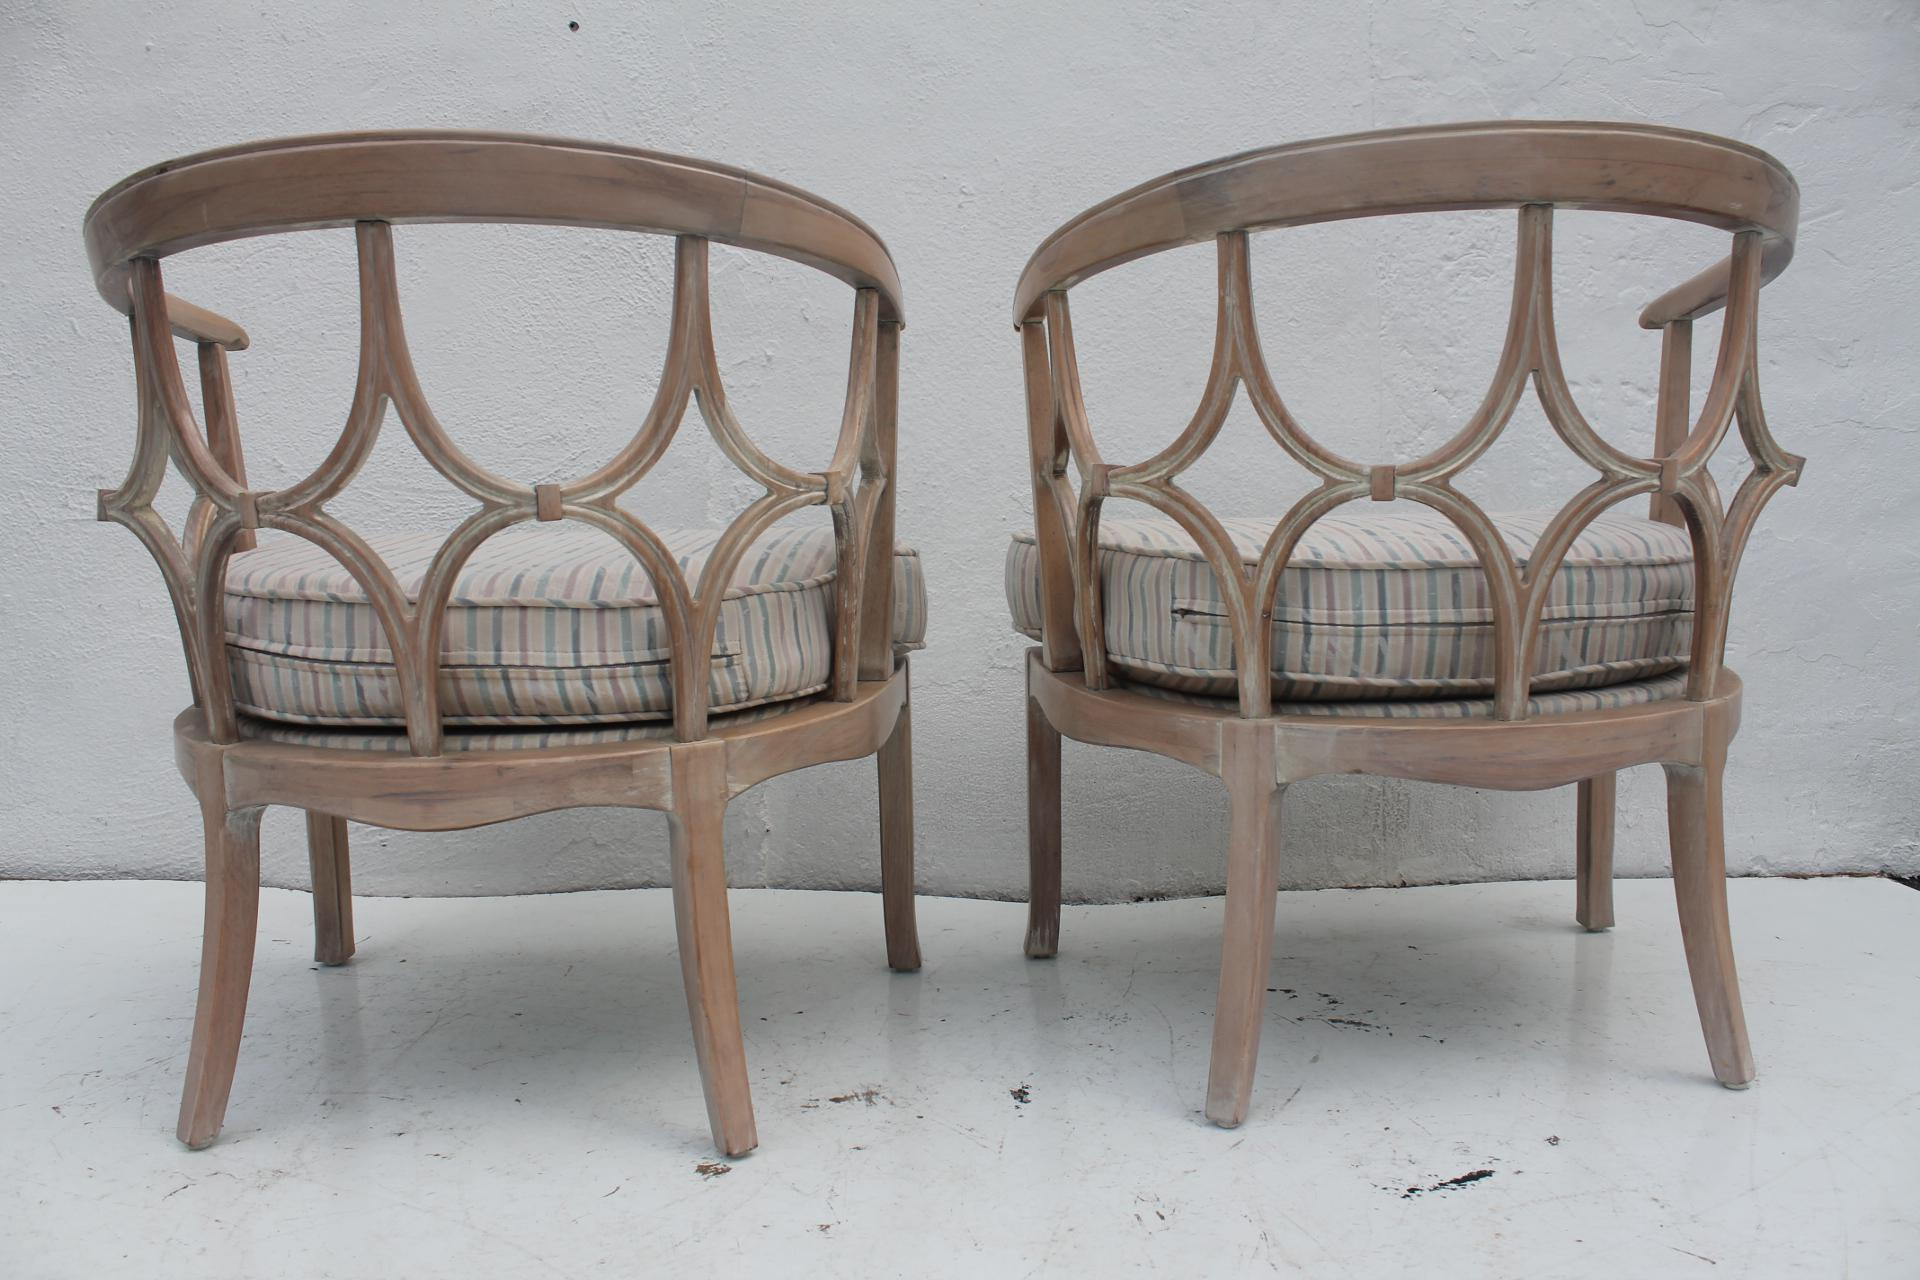 Beau Dorothy Draper Style Hollywood Regency Chairs A Pair   Image 4 Of 11